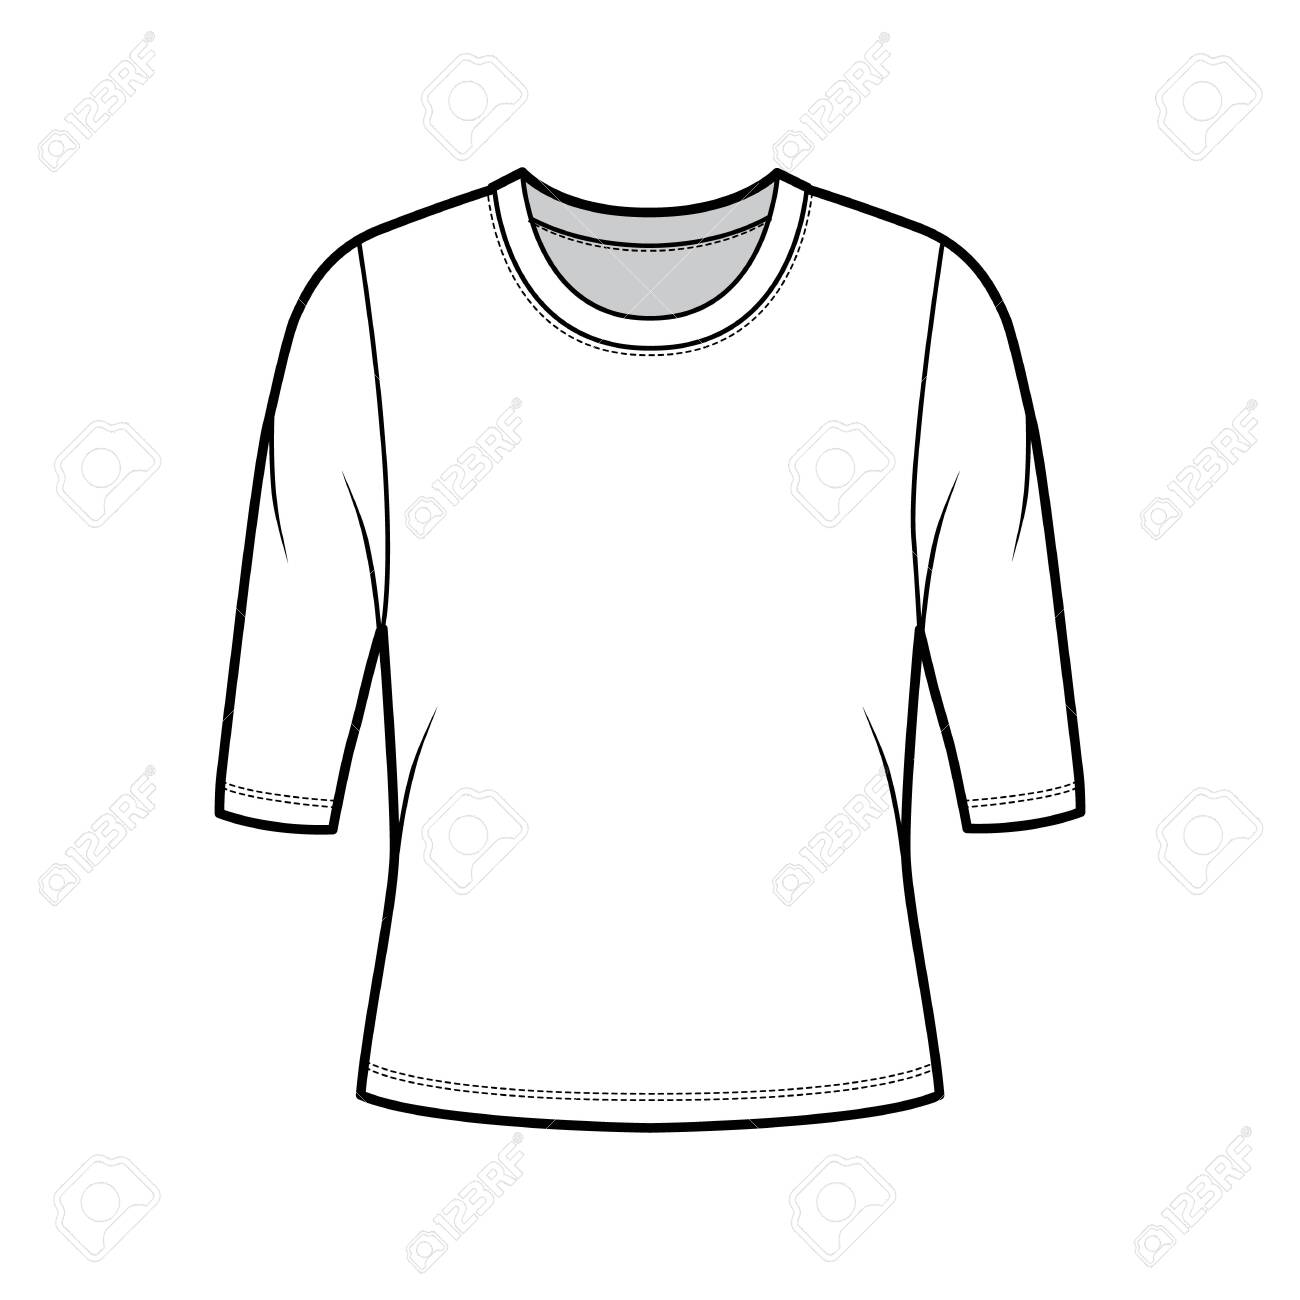 Crew neck jersey sweater technical fashion illustration with elbow sleeves, oversized body. Flat outwear apparel template front, white color. Women, men unisex shirt top CAD mockup - 152856130